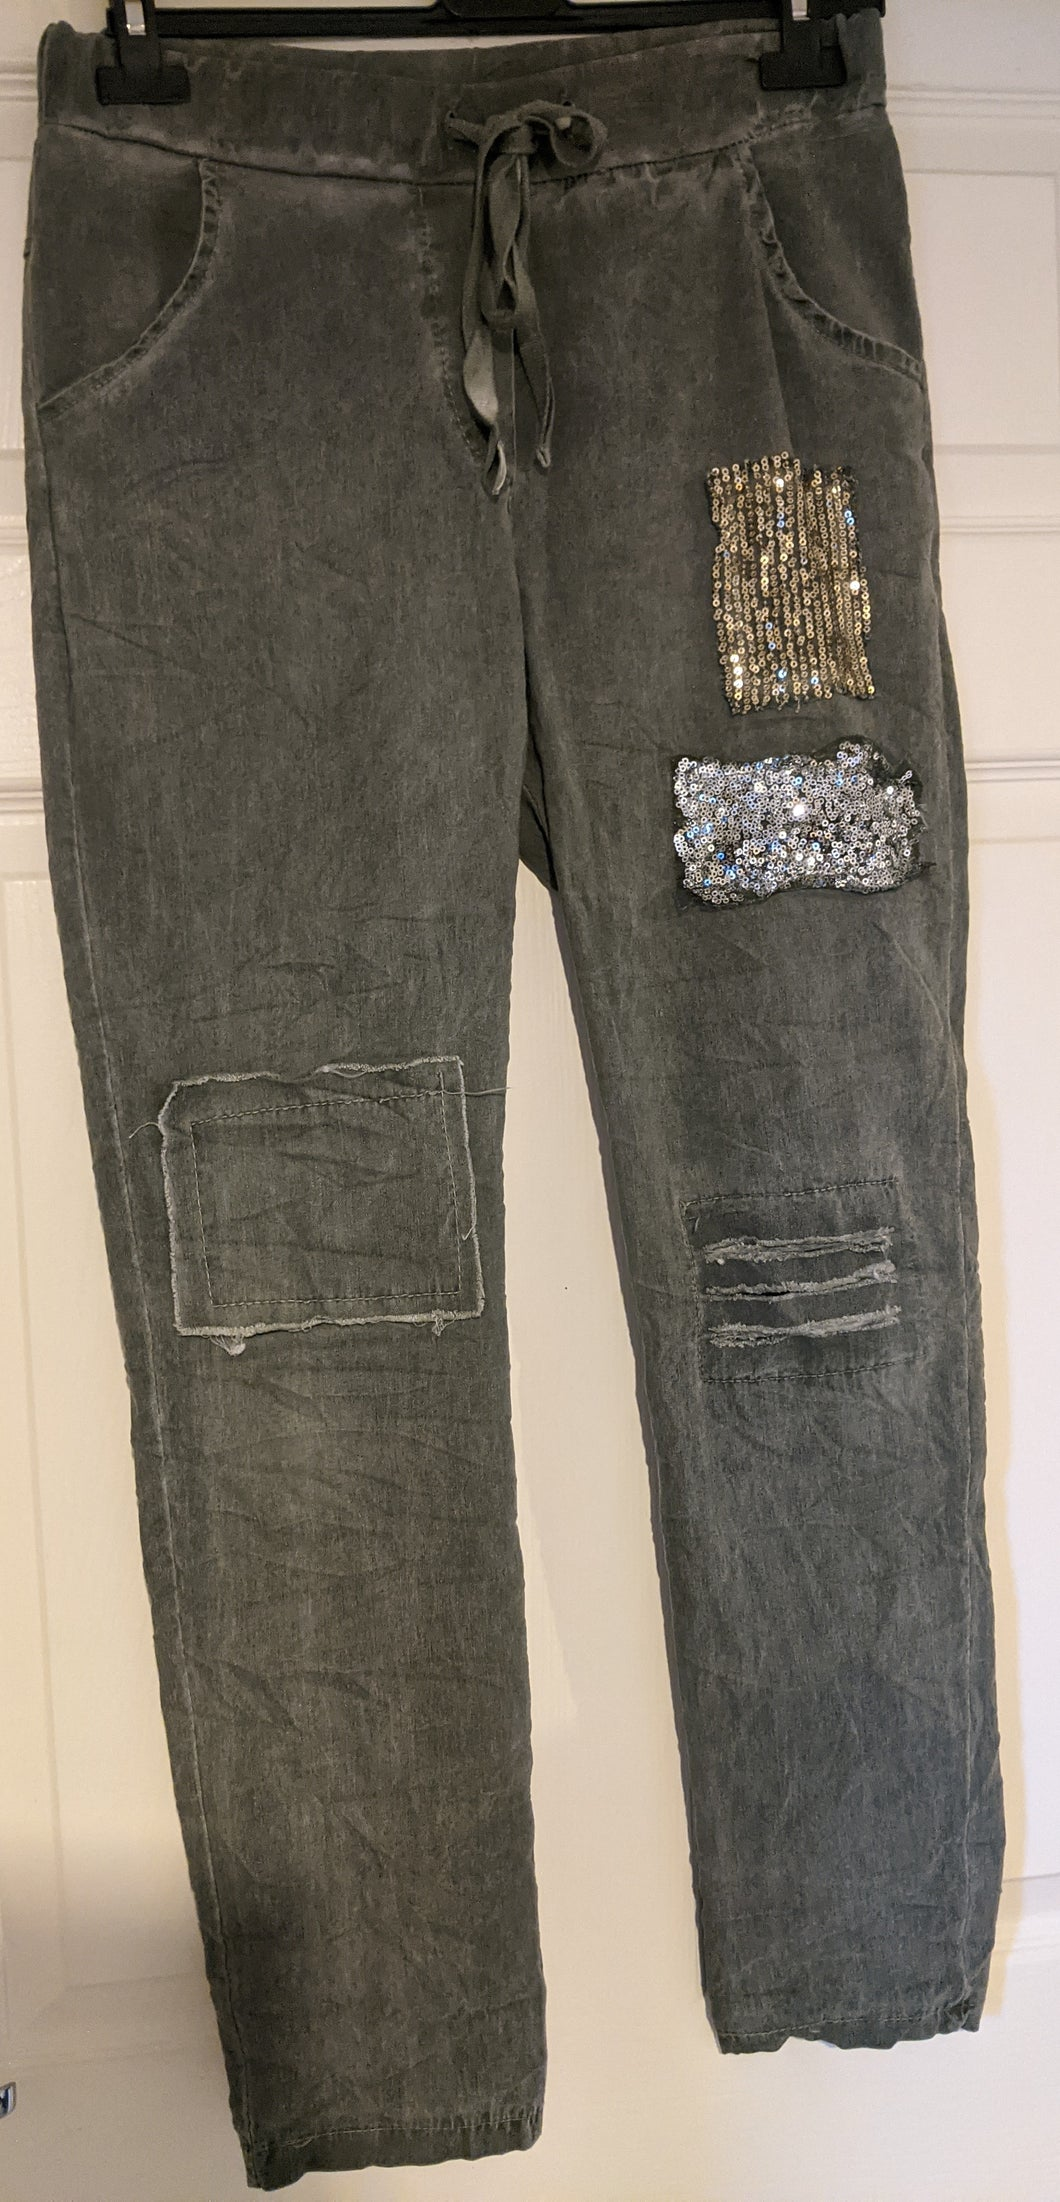 Stretch 'Magic' Trousers - Patches and Shredded Sequin Detail